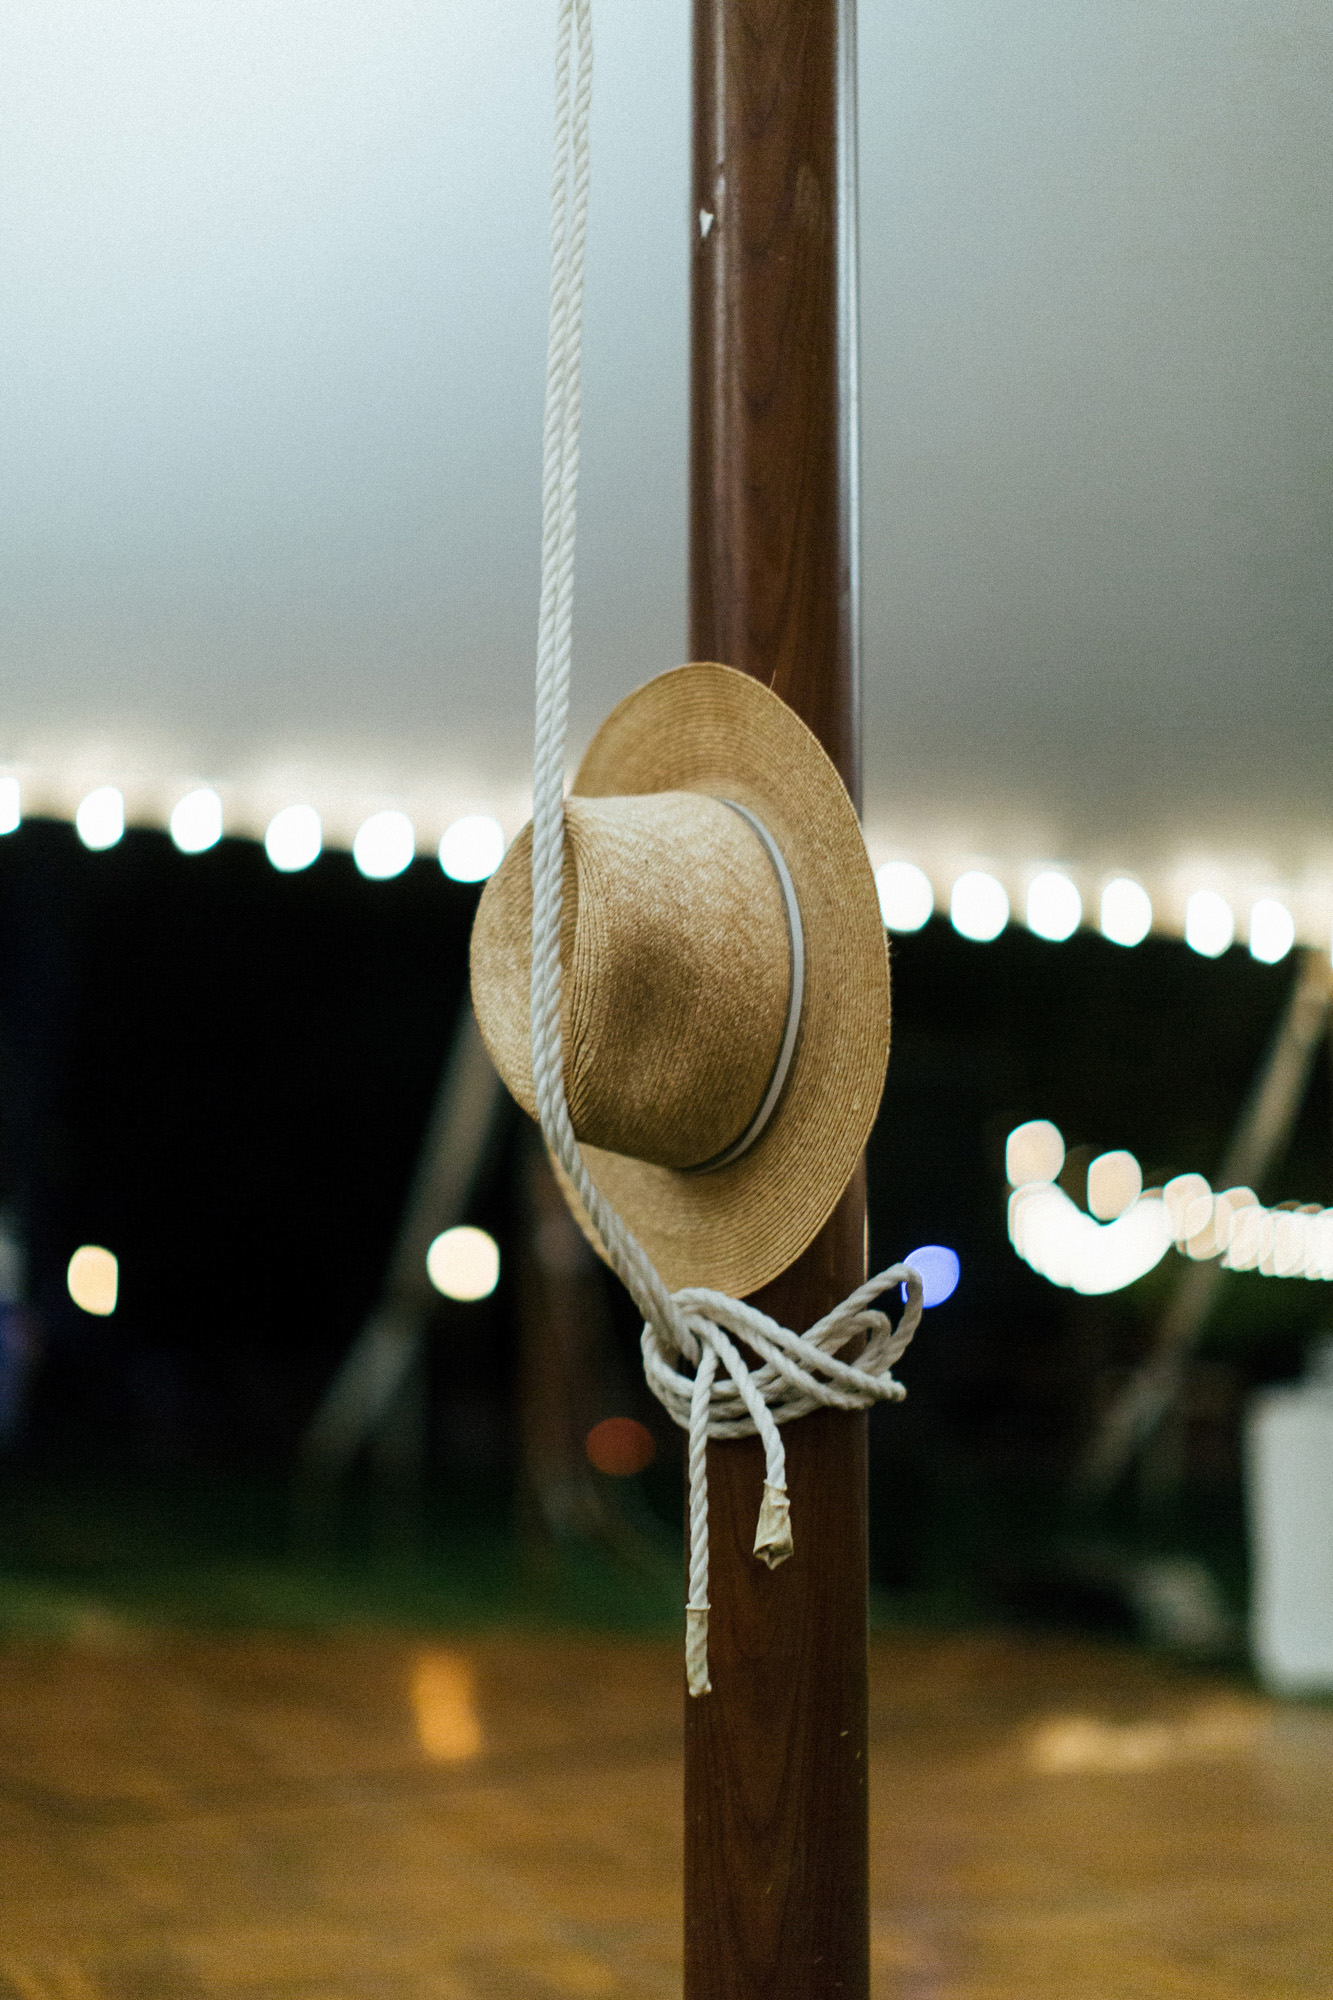 upstate_new_york_wedding_alec_vanderboom-0101.jpg